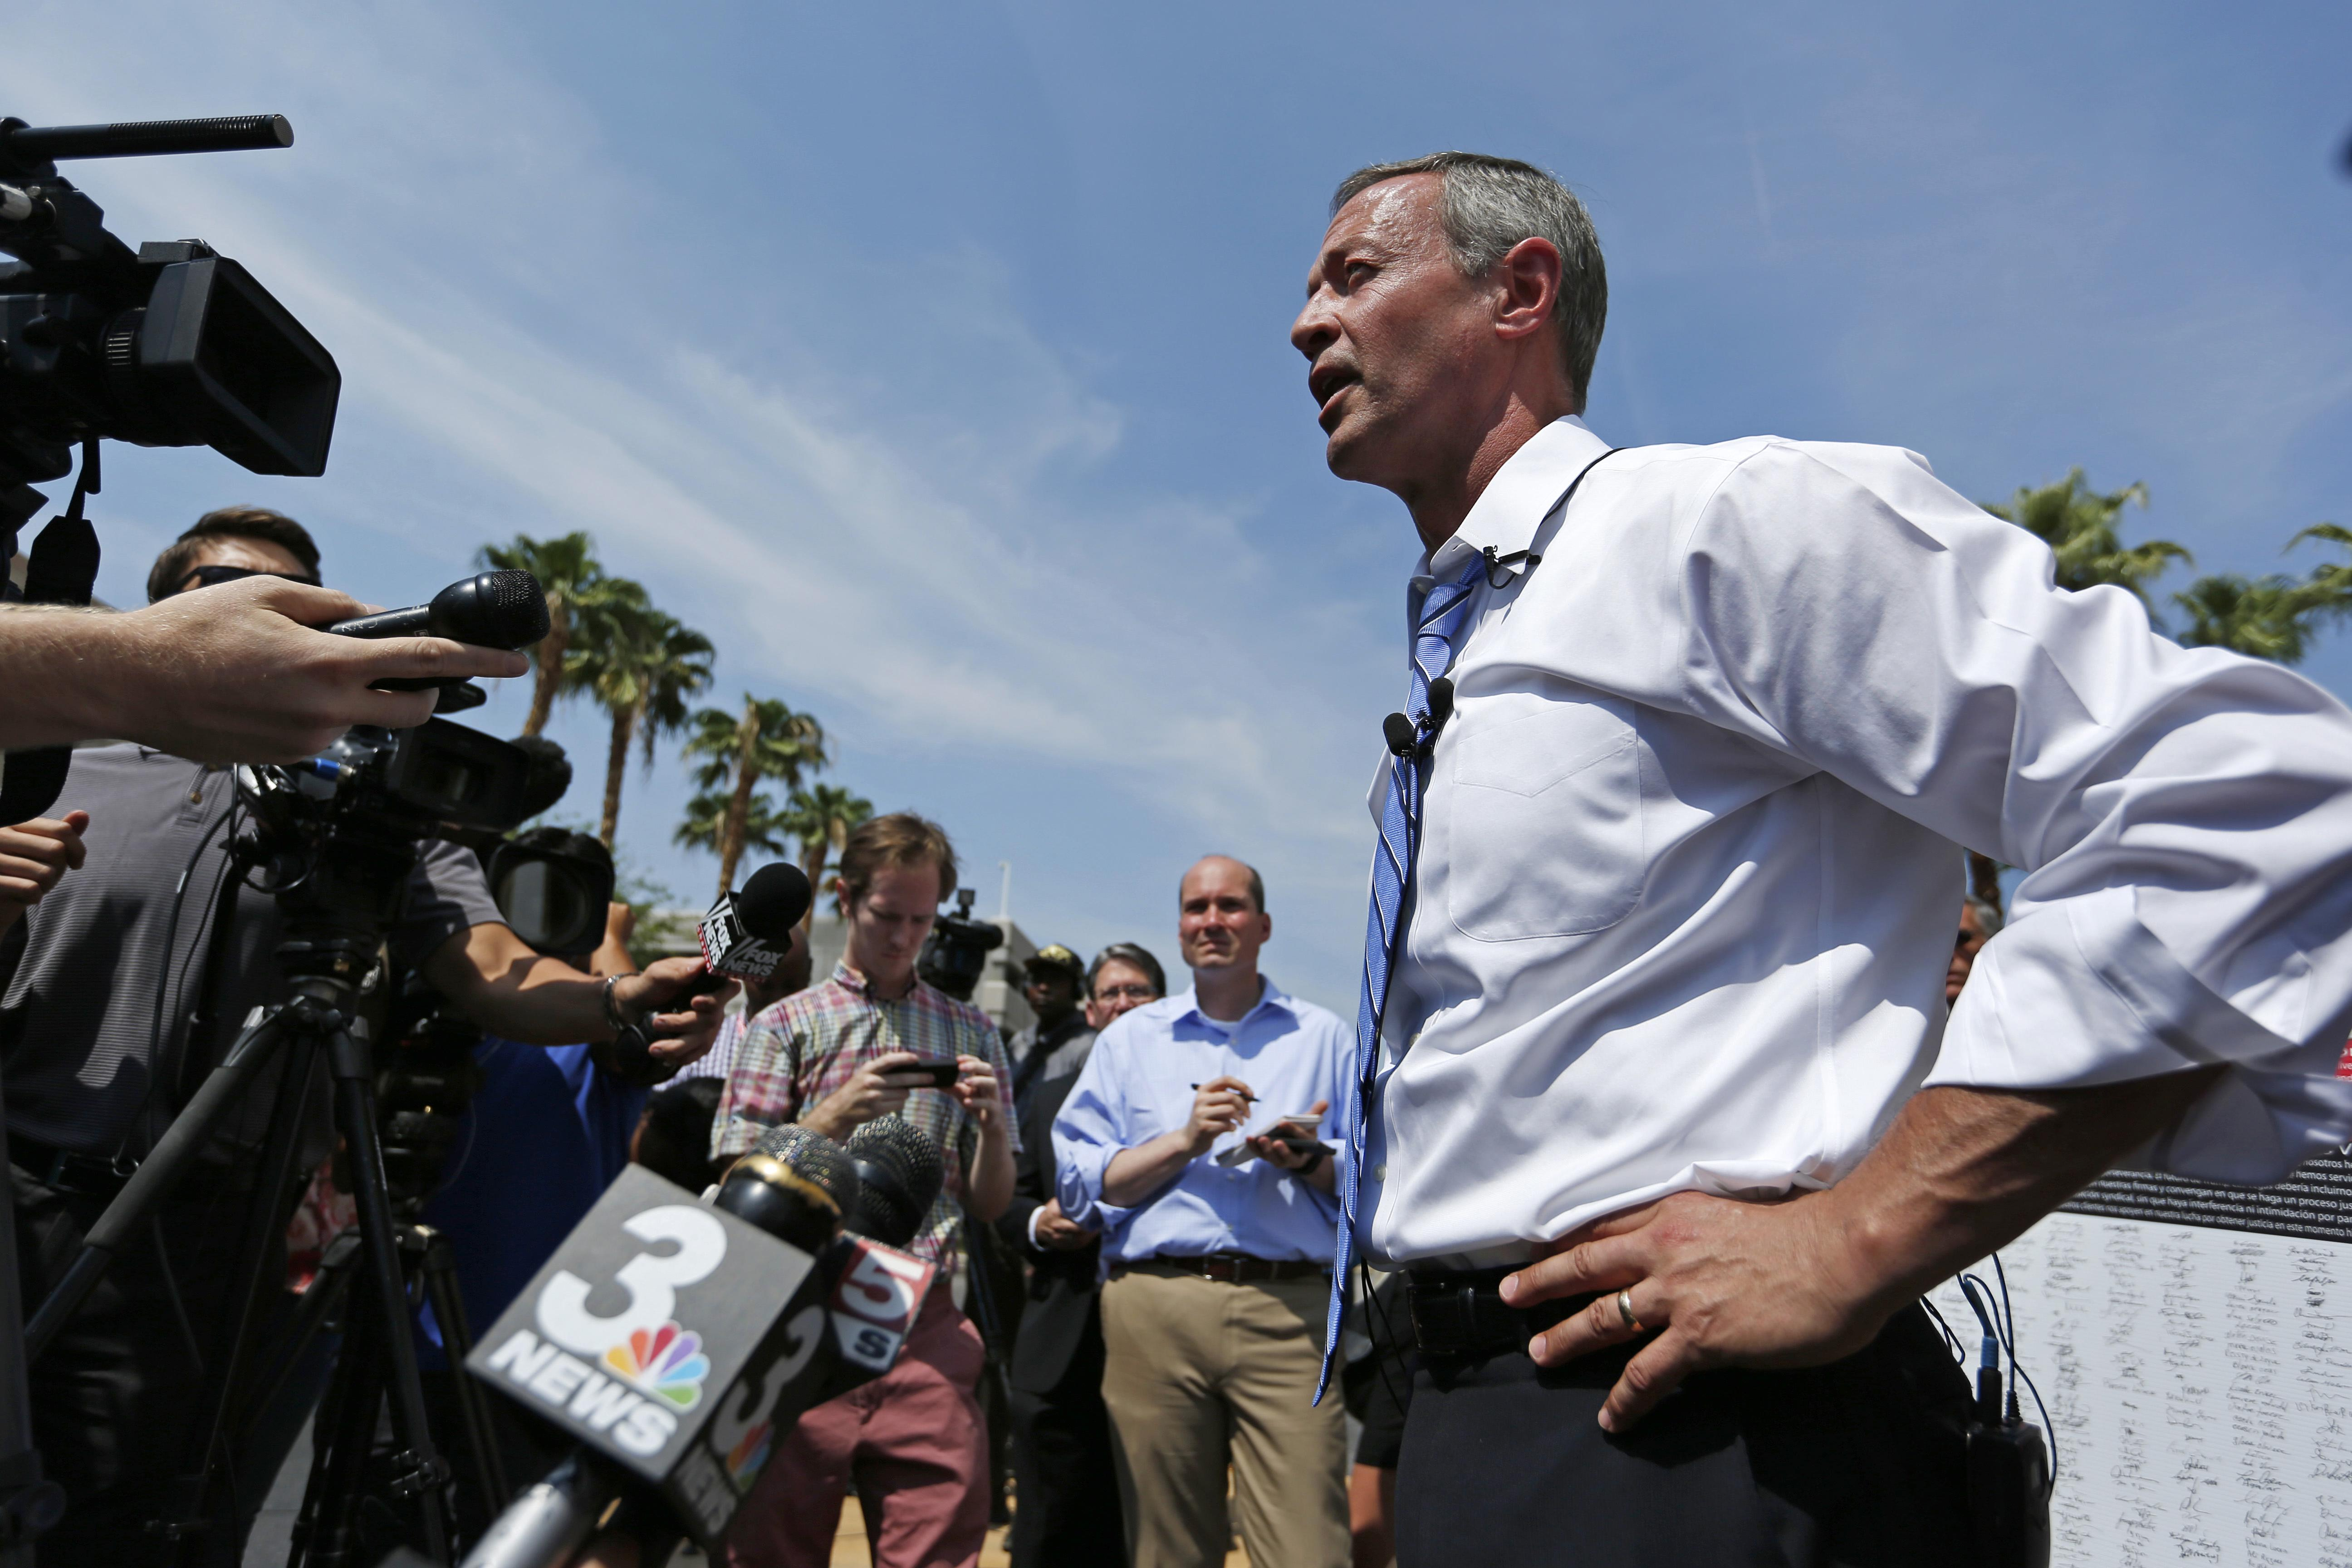 Martin O'Malley: A ball of crazy fit for a Democratic Party